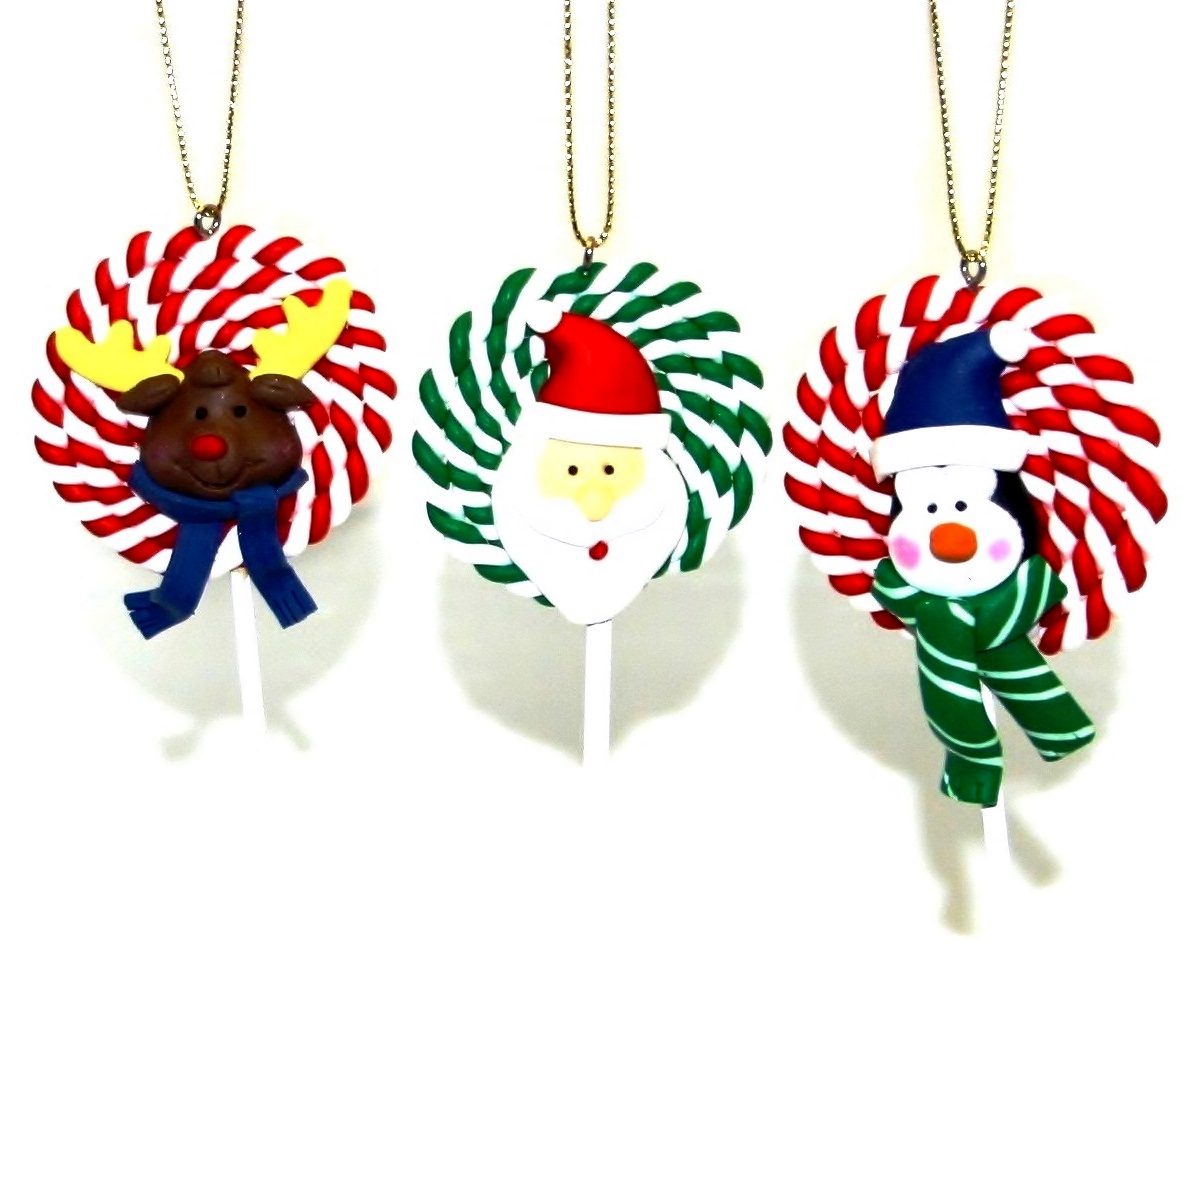 -lollipops-clay-christmas-tree-ornaments-handmade-xmas-decorations ...